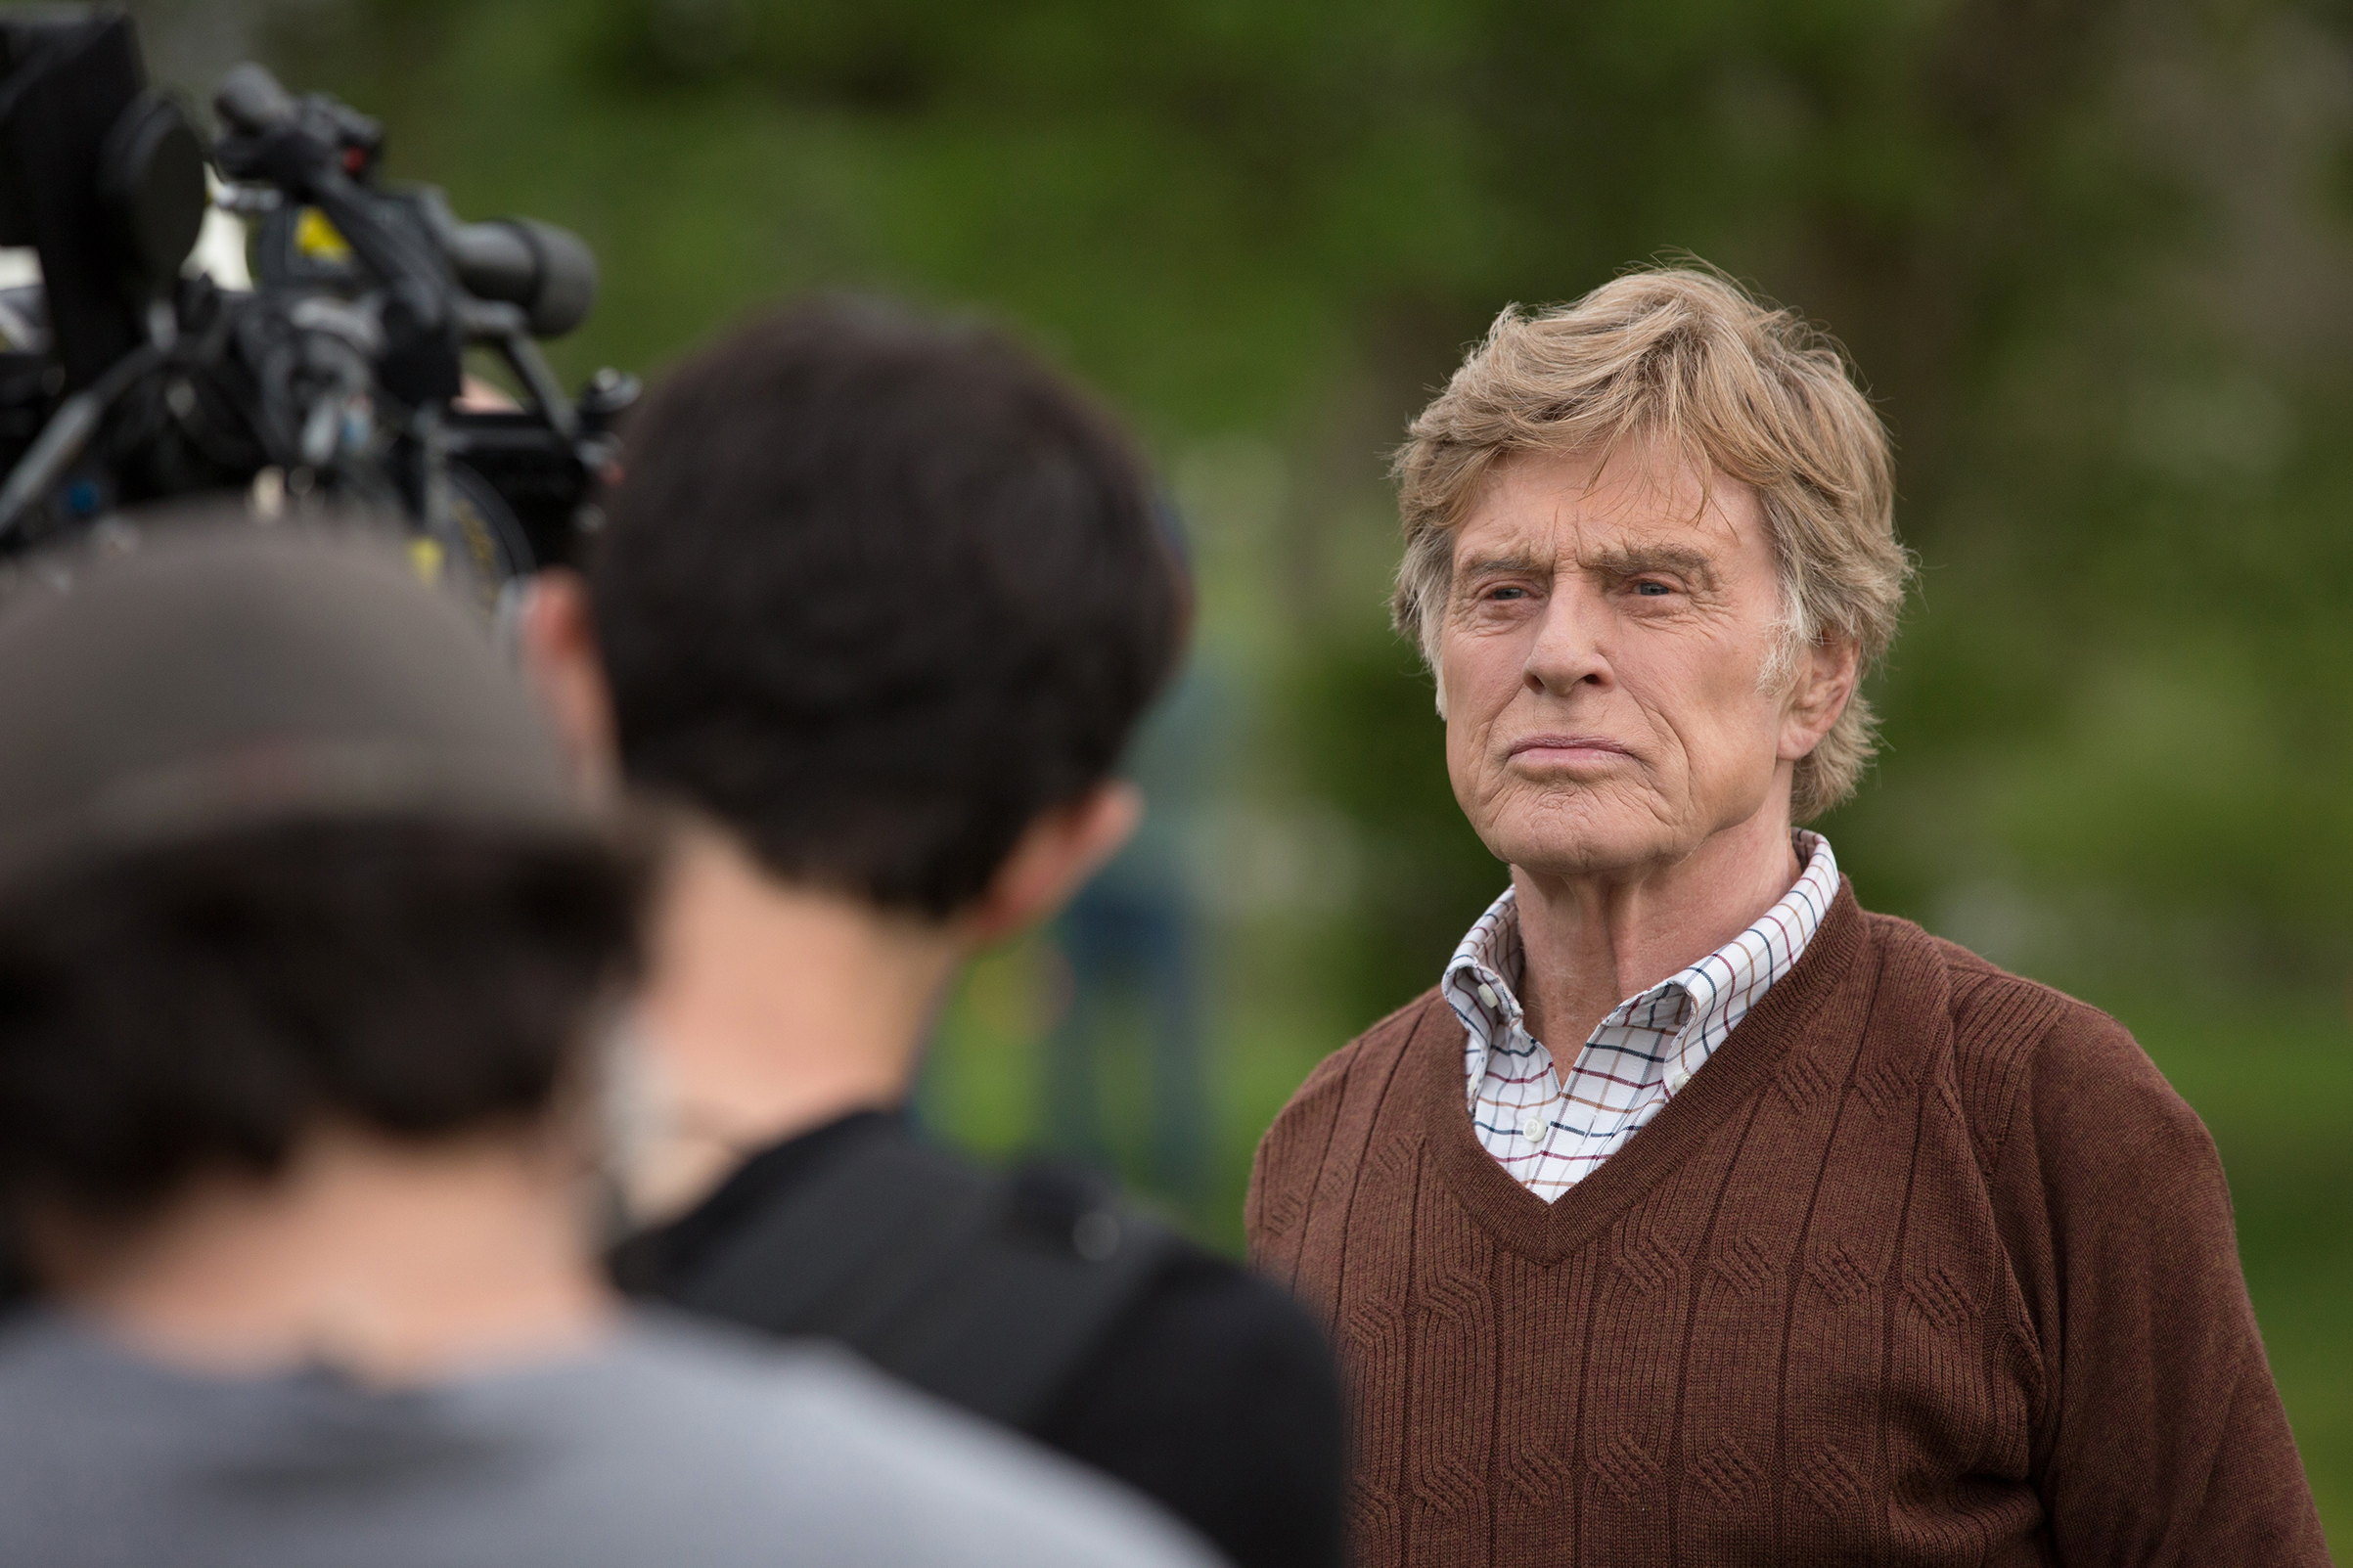 Robert Redford on the set of  The Old Man & the Gun  where he plays real-life bank robber Forrest Tucker